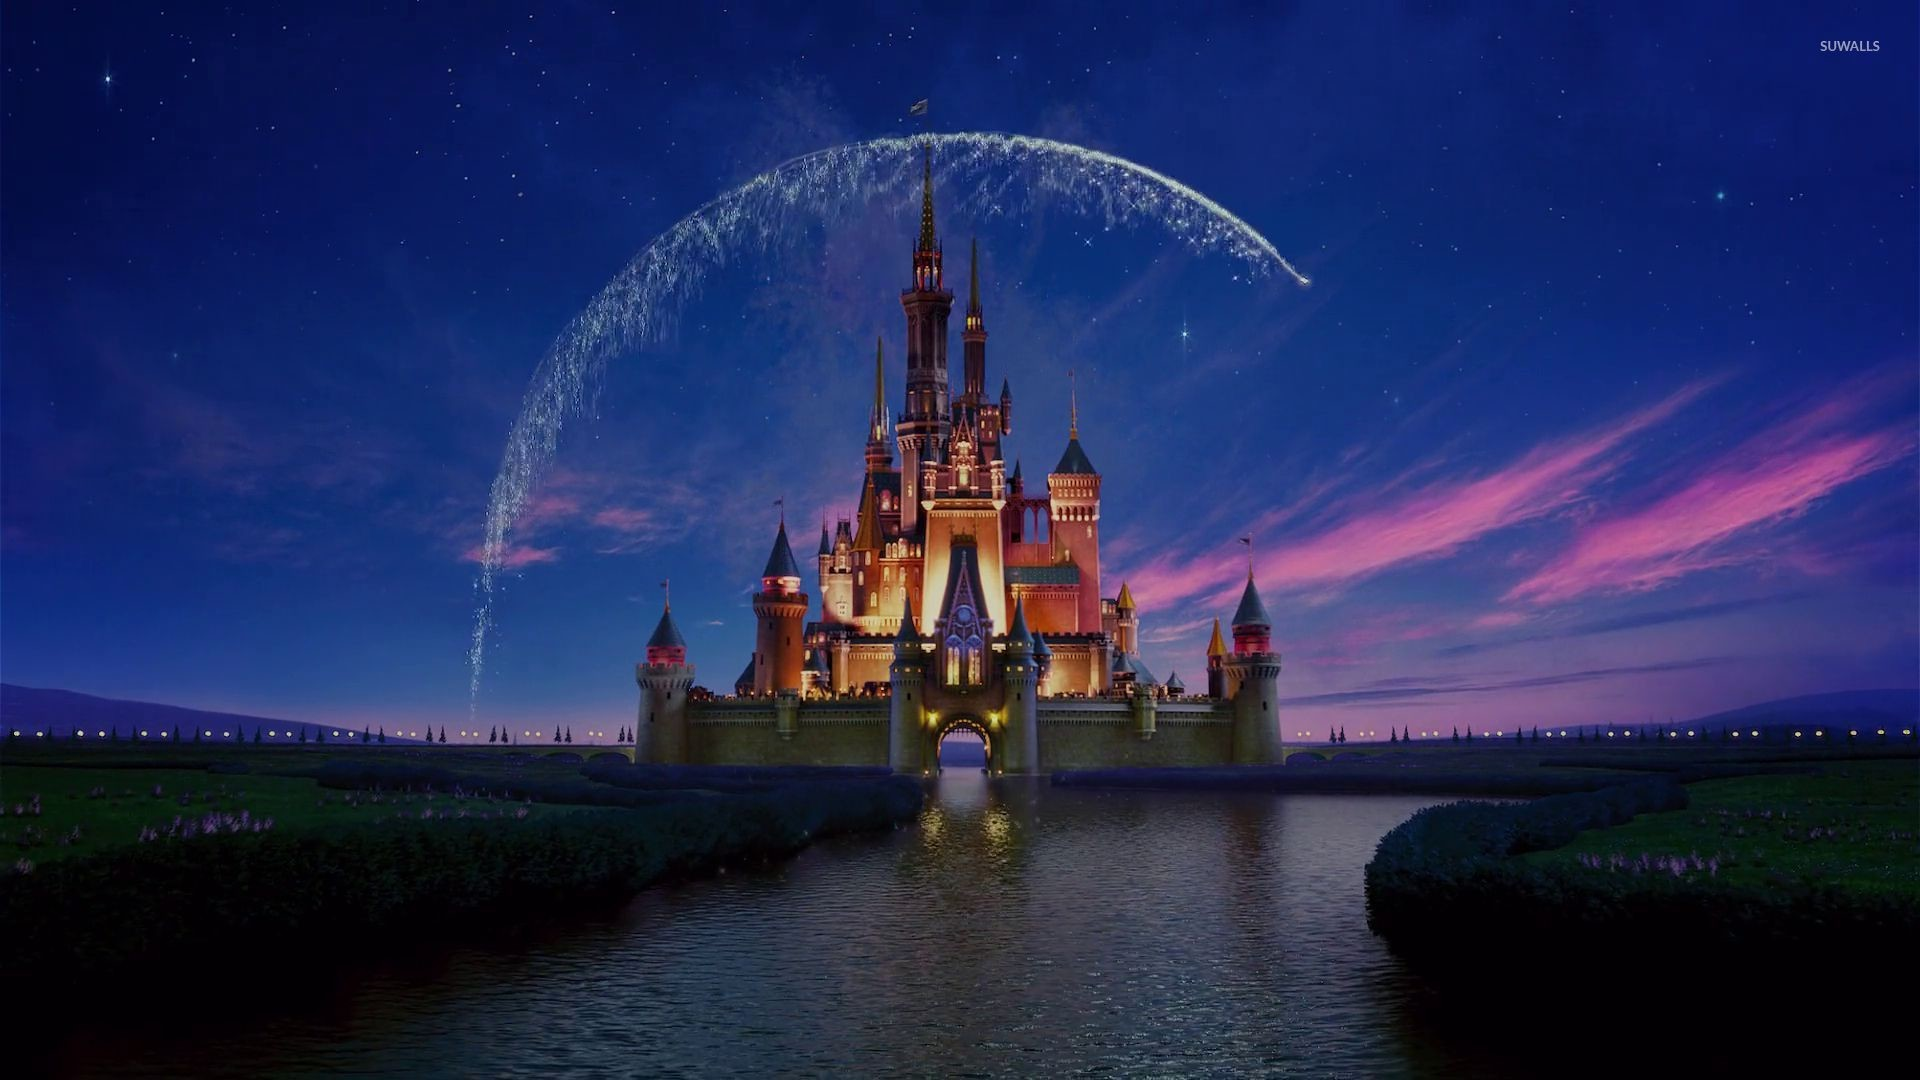 Disney Wallpaper 1920x1080 74 Images